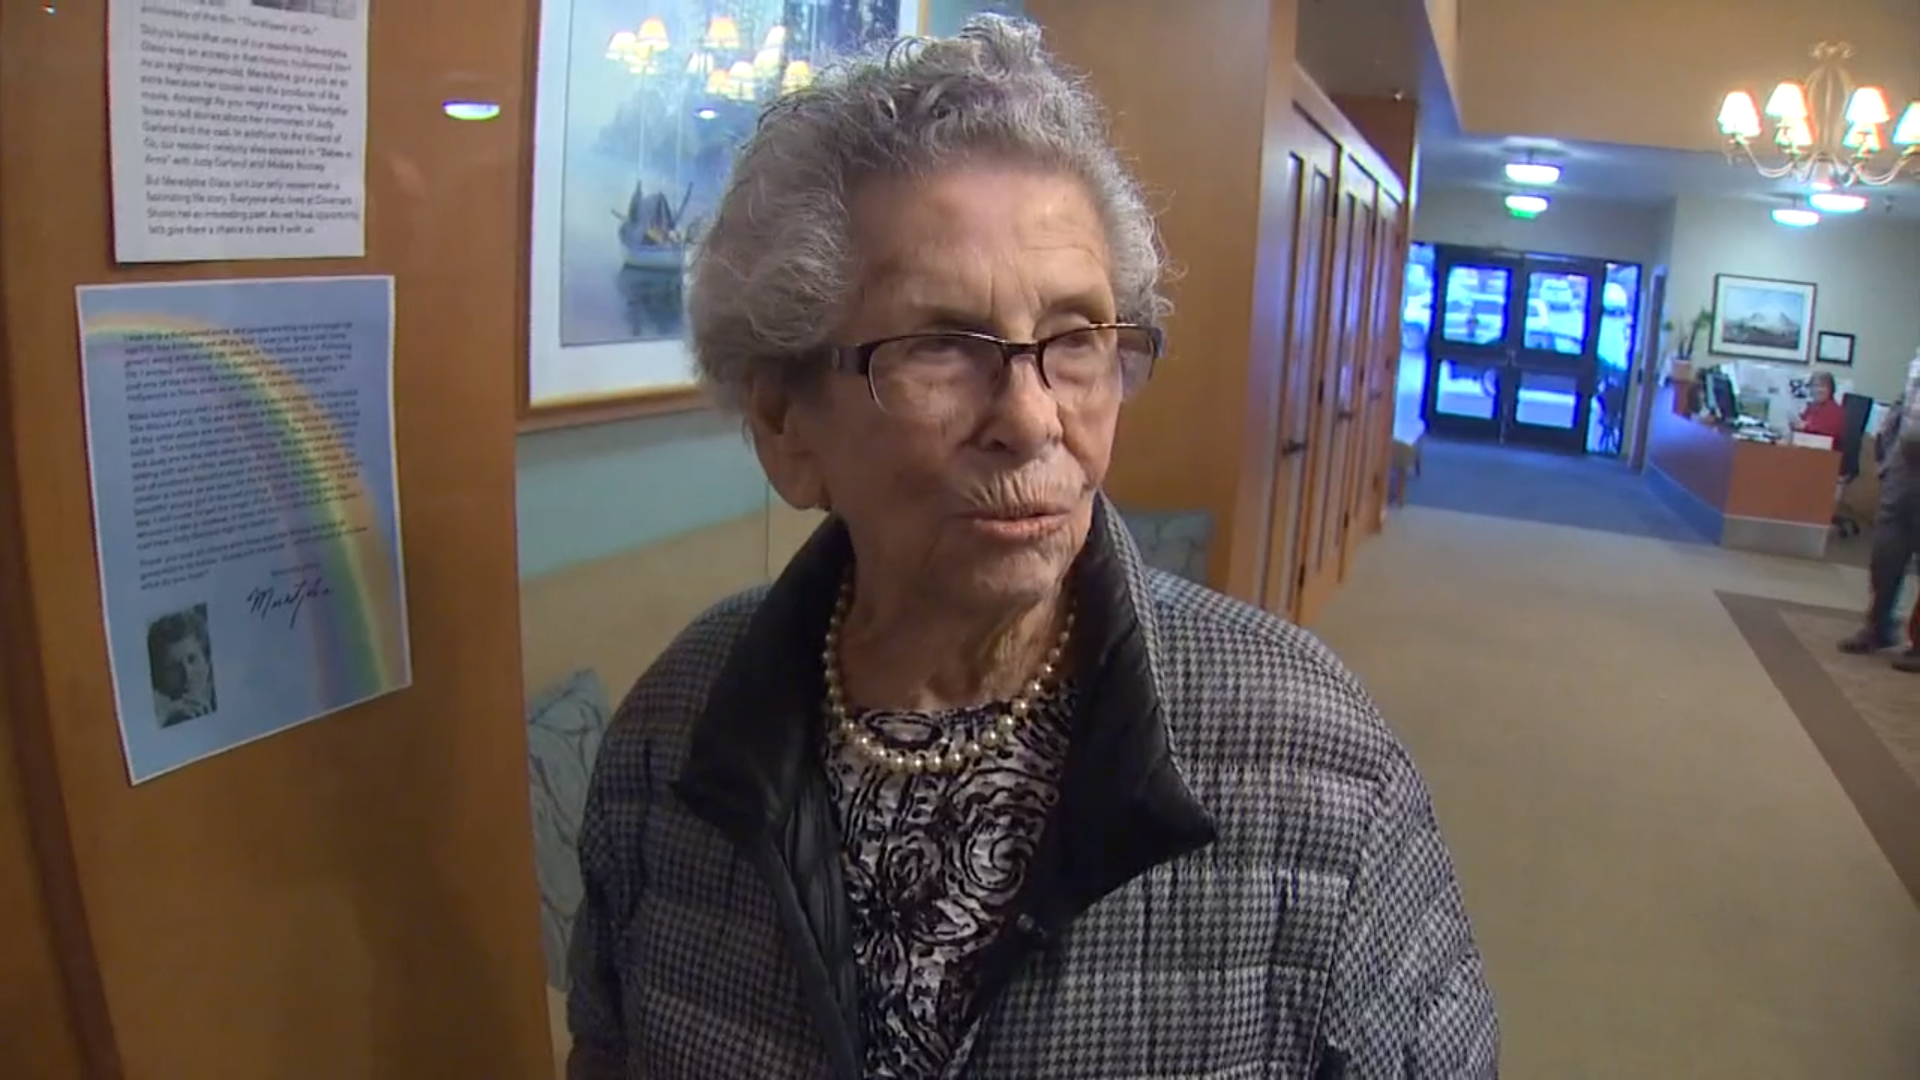 Meredythe Glass, a Mercer Island resident,  shares the secrets of a long life  with King 5 News from being an extra on the set of The Wizard of Oz 80 years ago to volunteering at the Mercer Island Thrift Shop.  Image: King 5 News.